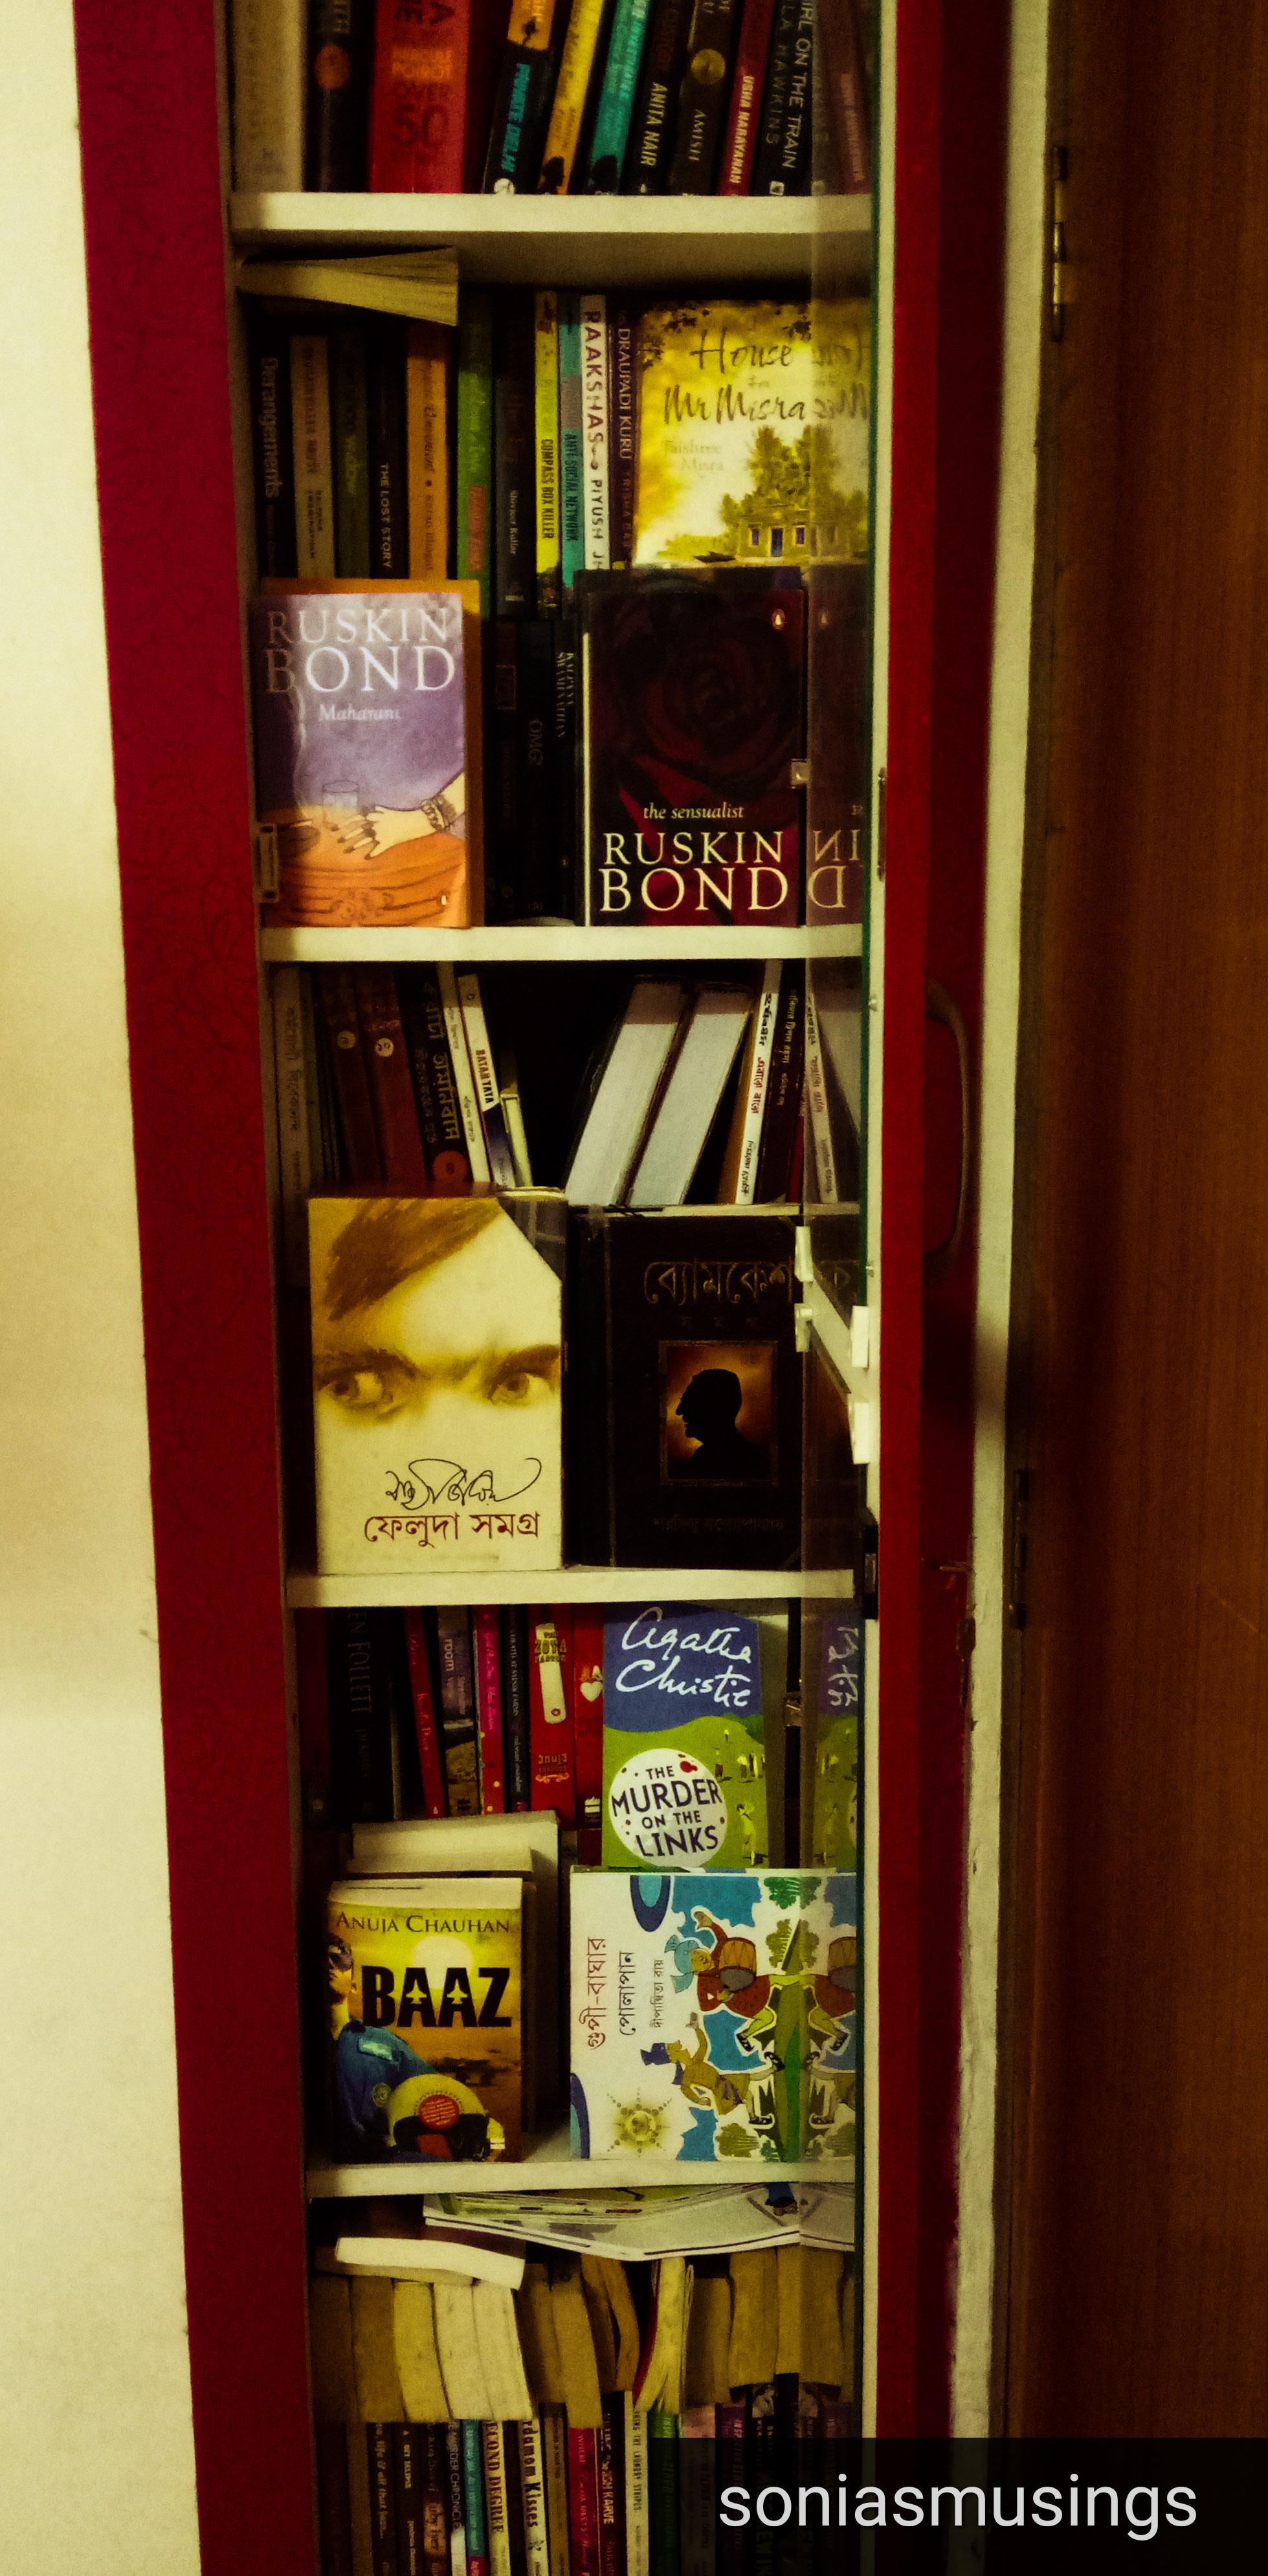 Books, emotions and memories over the years